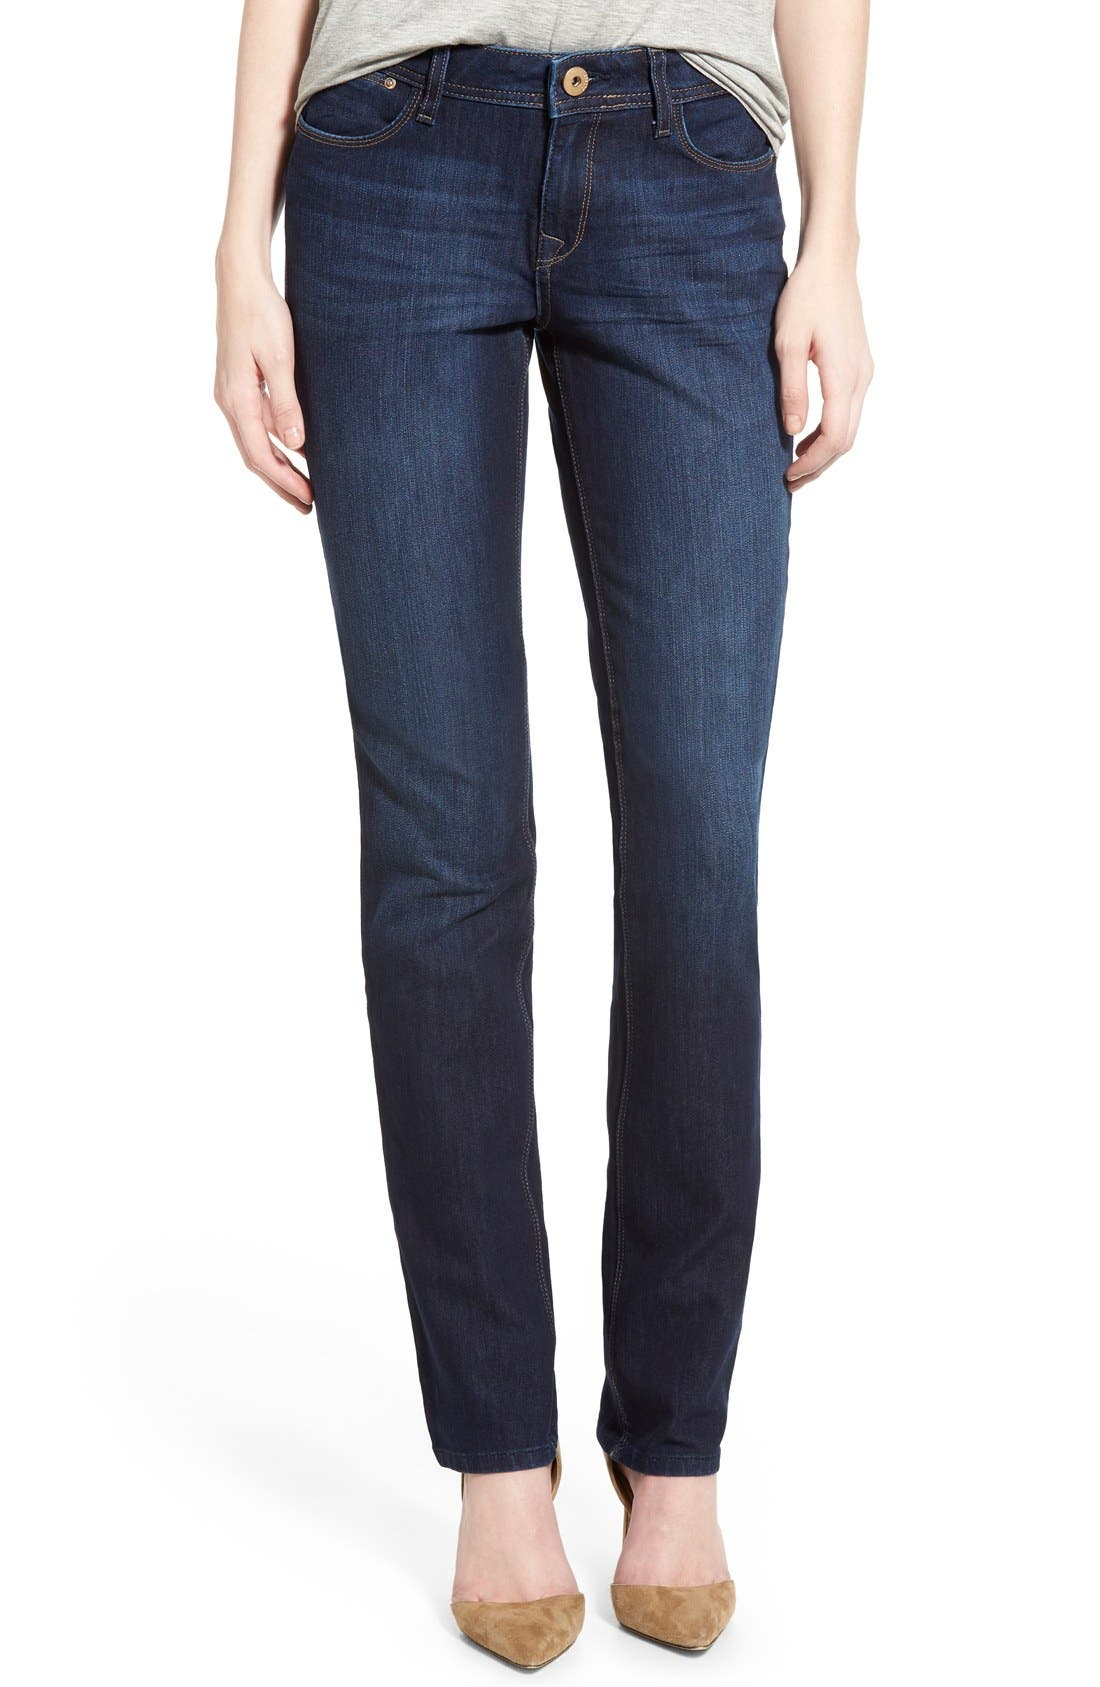 Alternate Image 1 Selected - DL1961 'Coco' Curvy Straight Jeans (Solo)